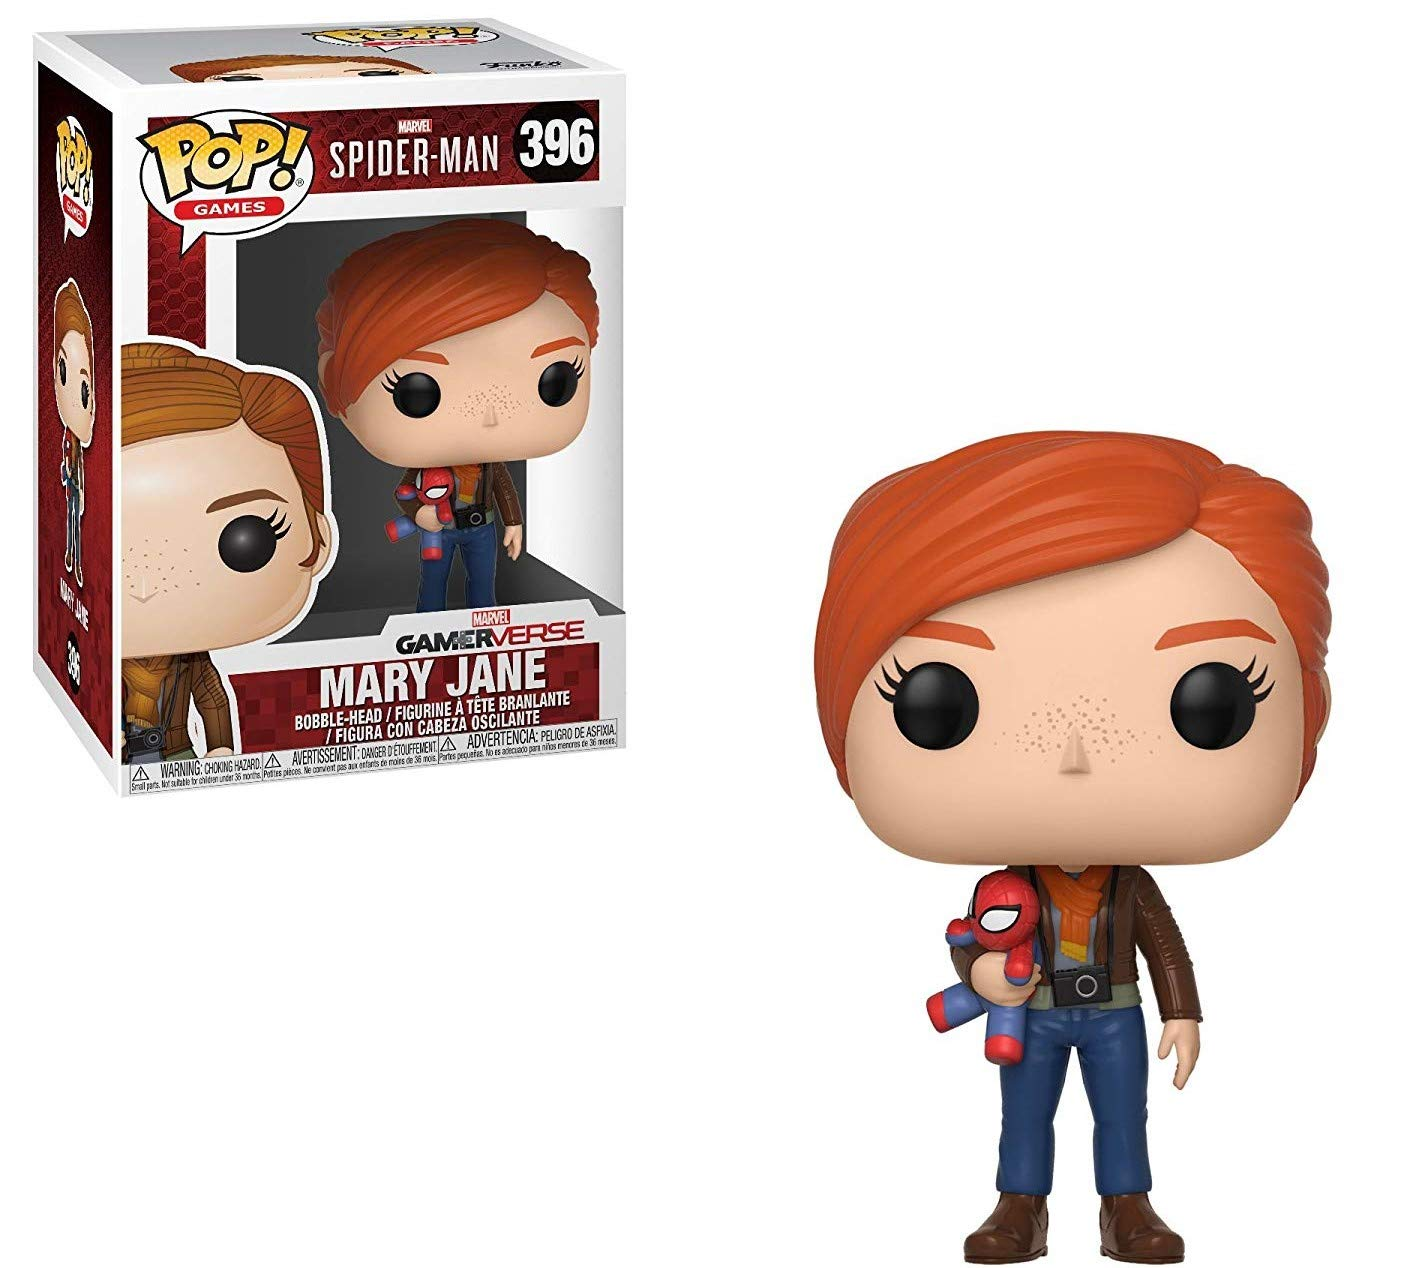 Funko Pop! Marvel: Spider-Man Video Game - Mary Jane Vinyl Figure (Bundled with Pop Box Protector Case) by Funko (Image #5)